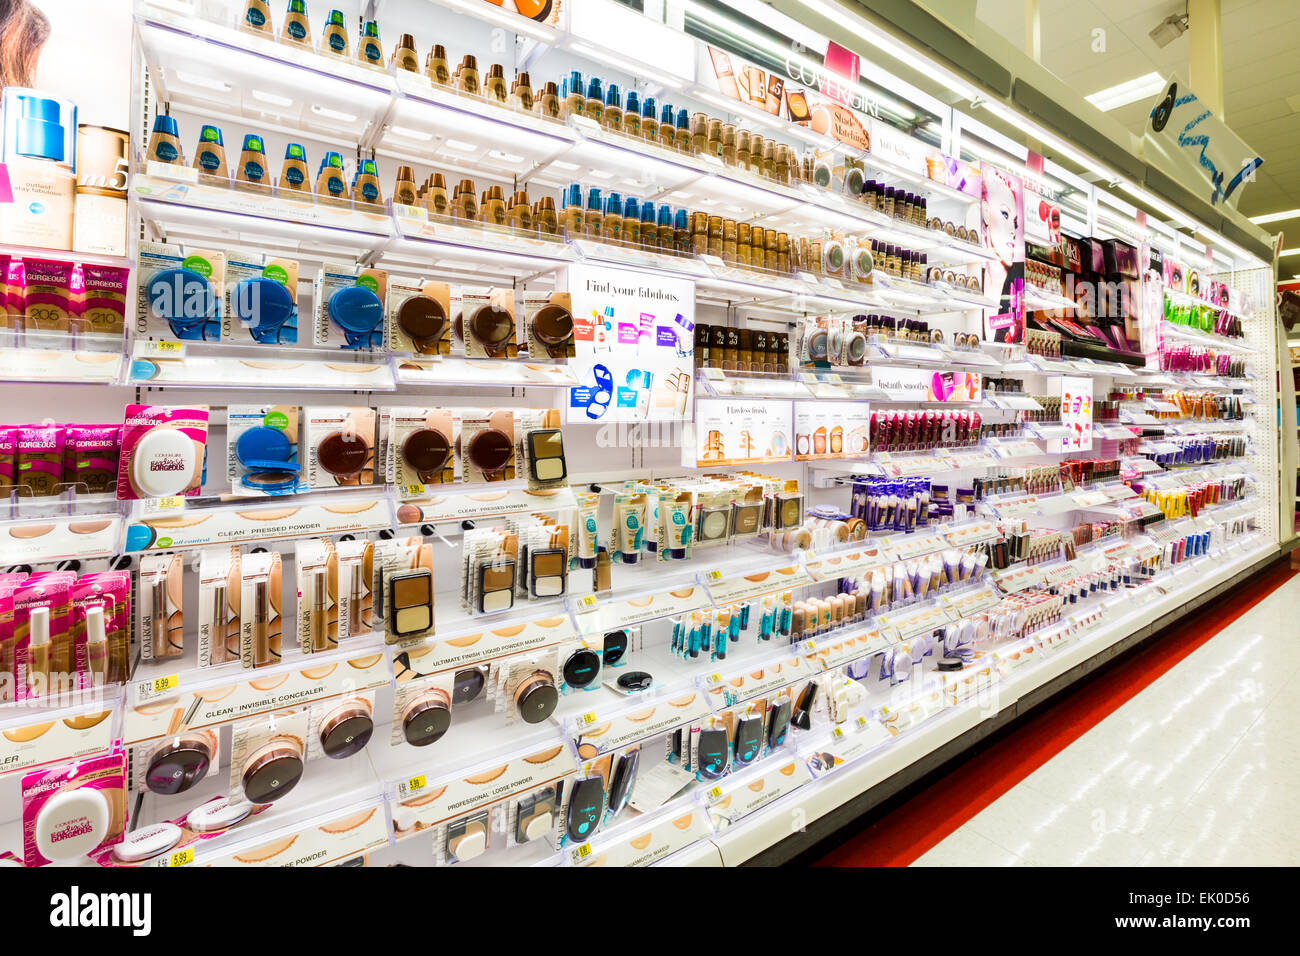 Cosmetics Department Stock Photos & Cosmetics Department